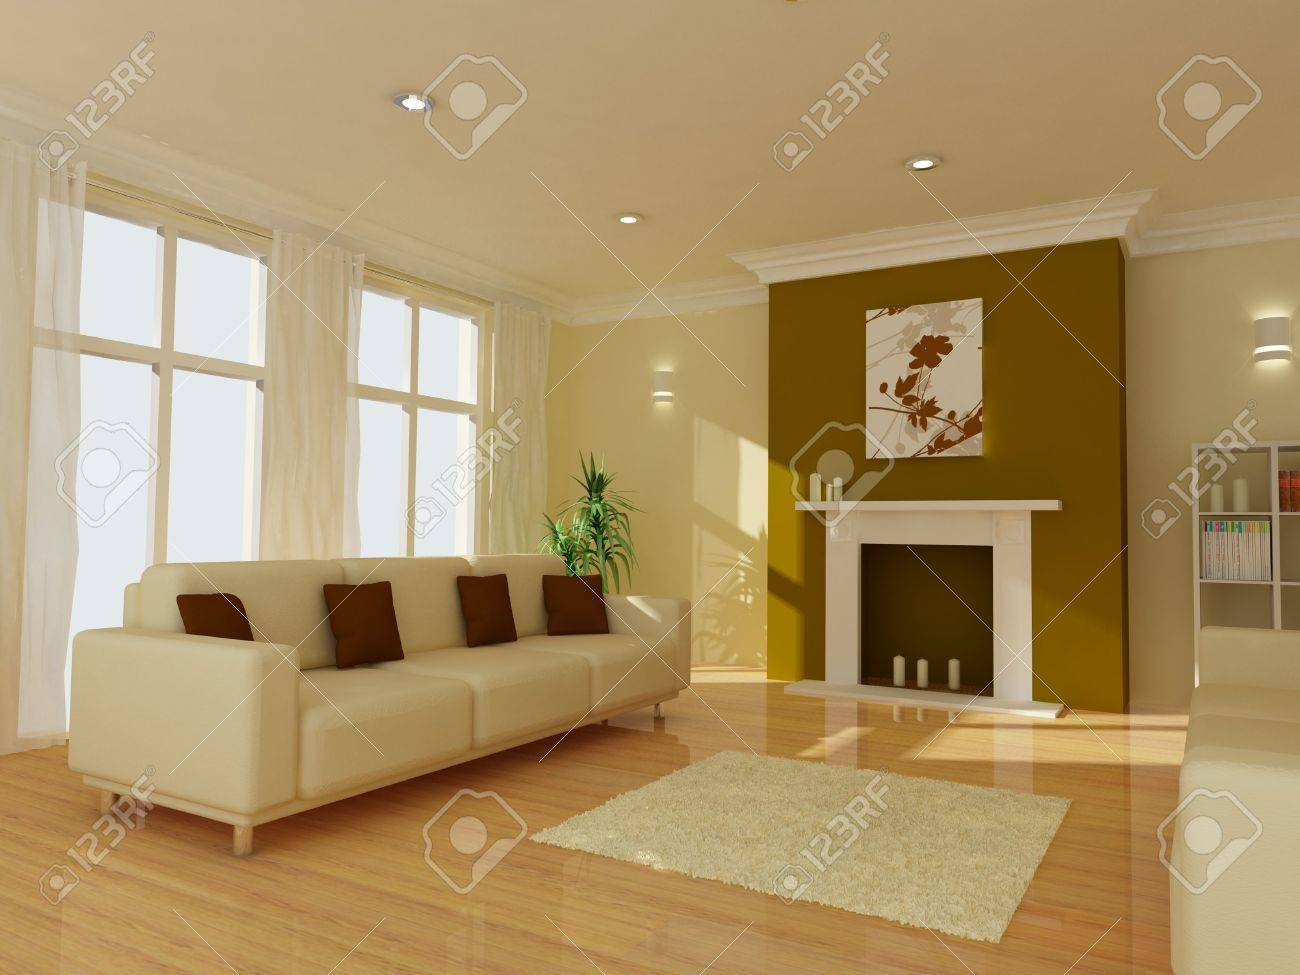 An image of a modern living room Stock Photo - 5088397